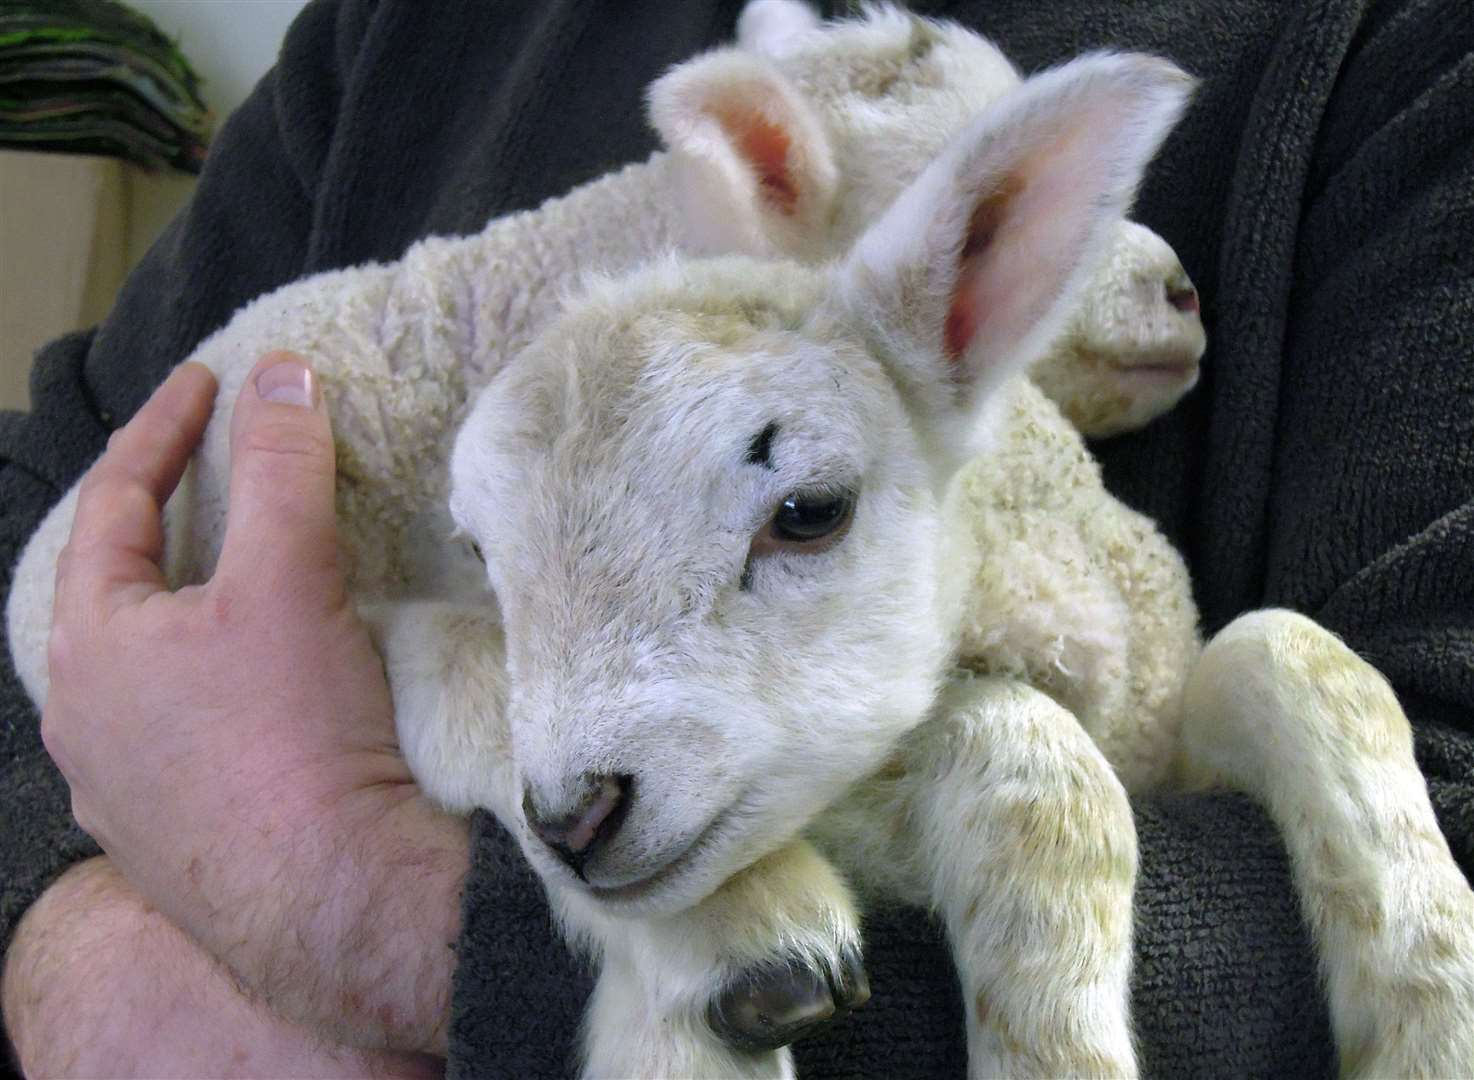 You can see little lambs at Brogdale this Easter weekend